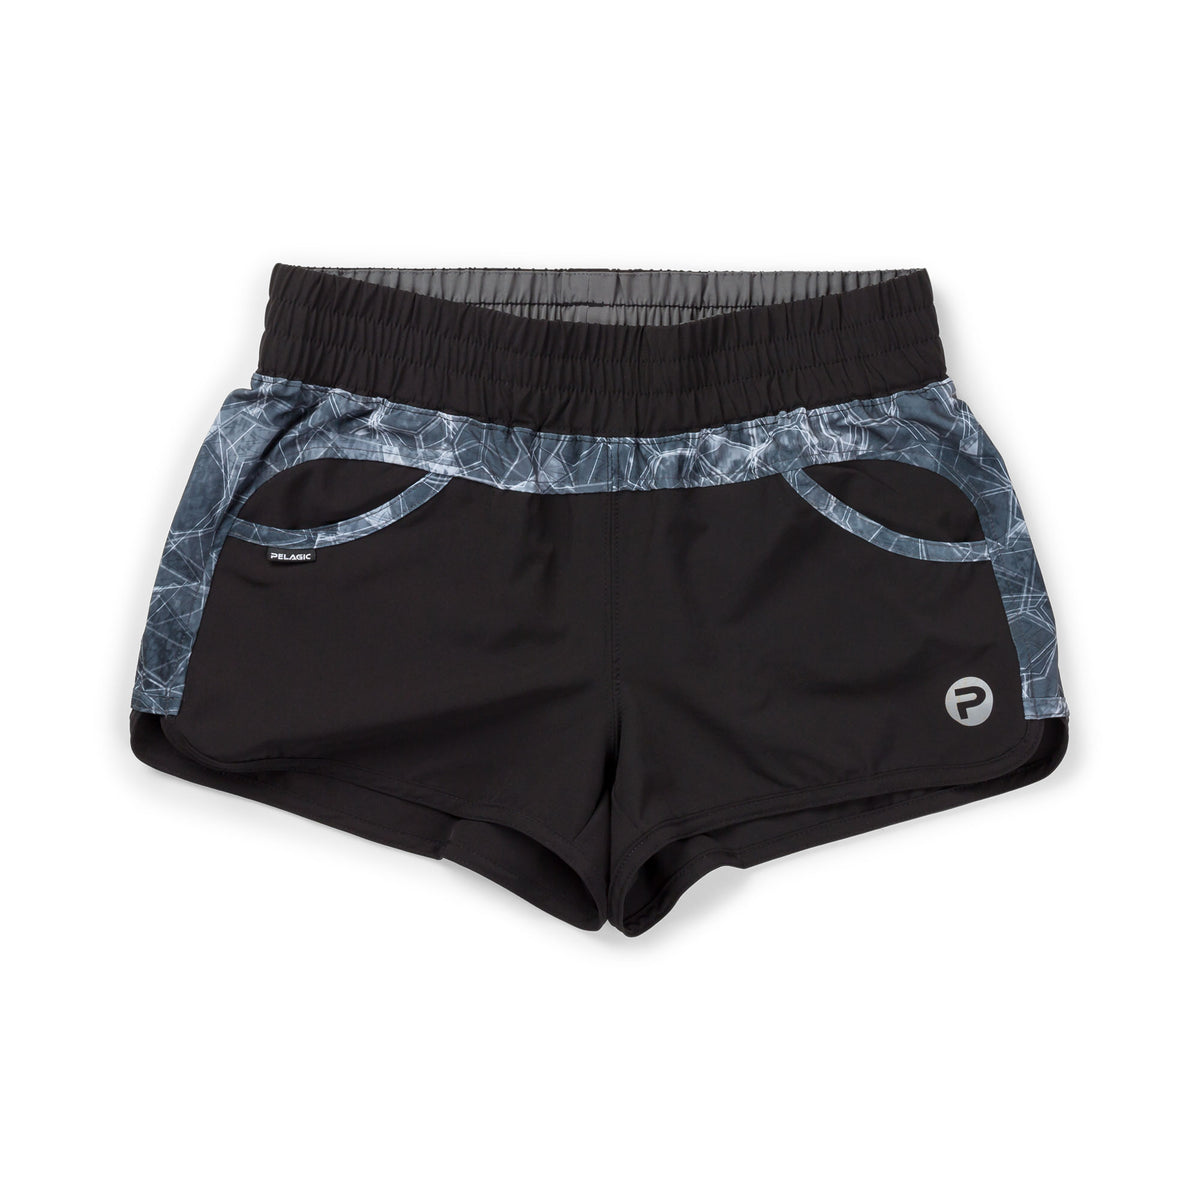 Catalina Hybrid Fishing Shorts Big Image - 1